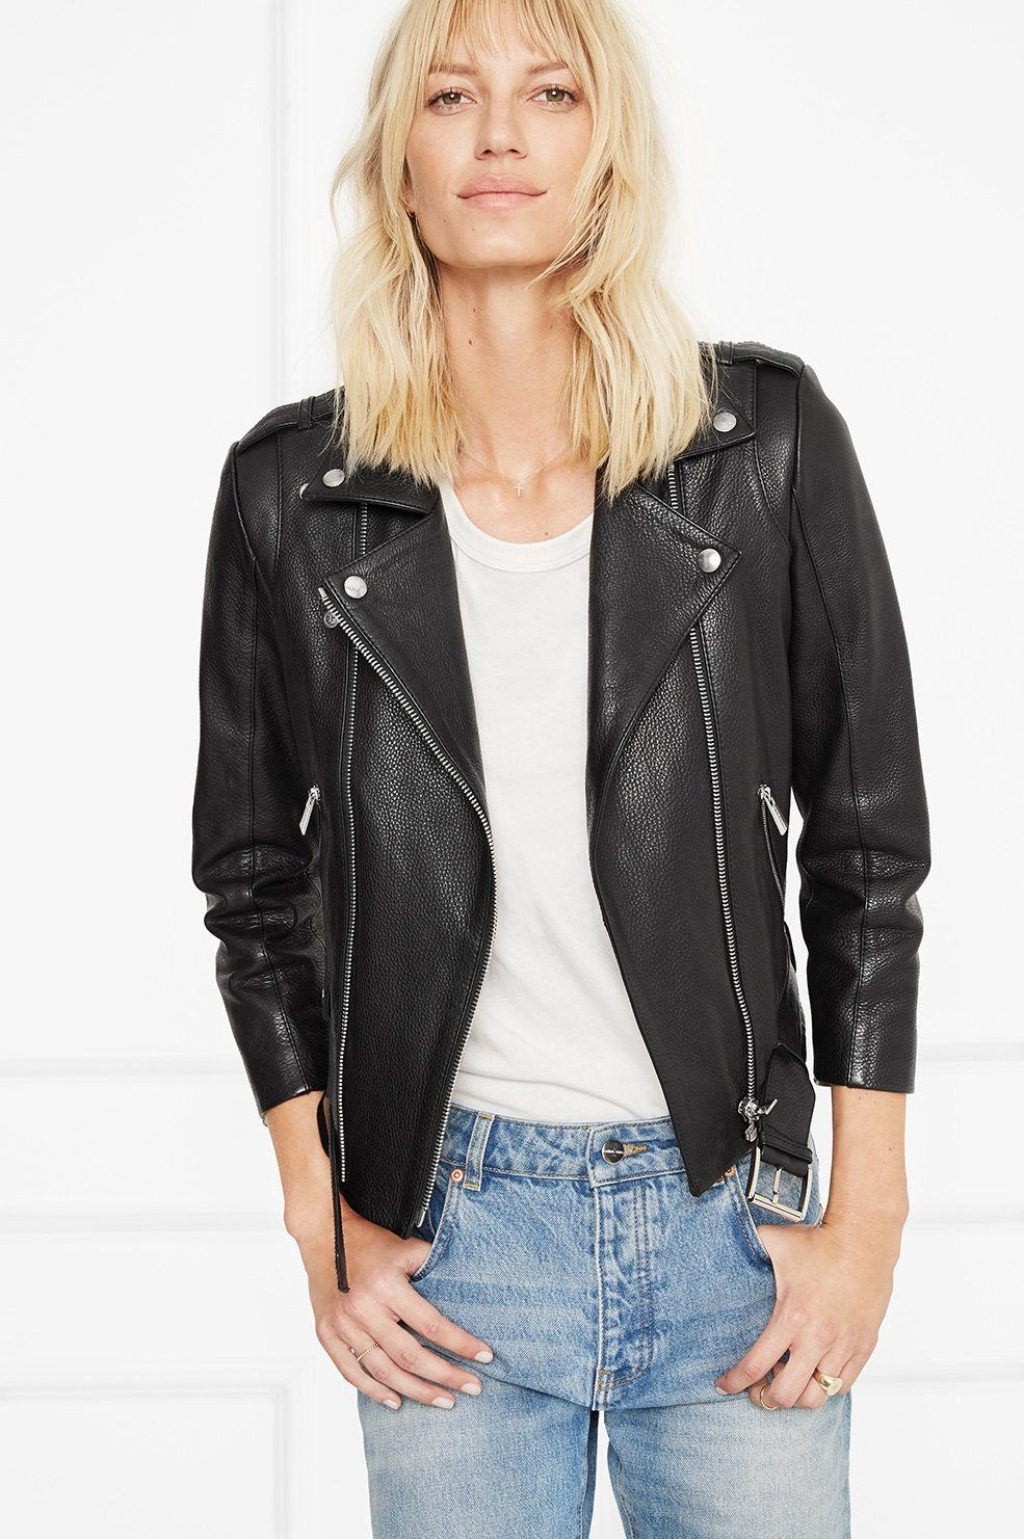 Annie Bing Wearing a Leather Motorcycle Jacket